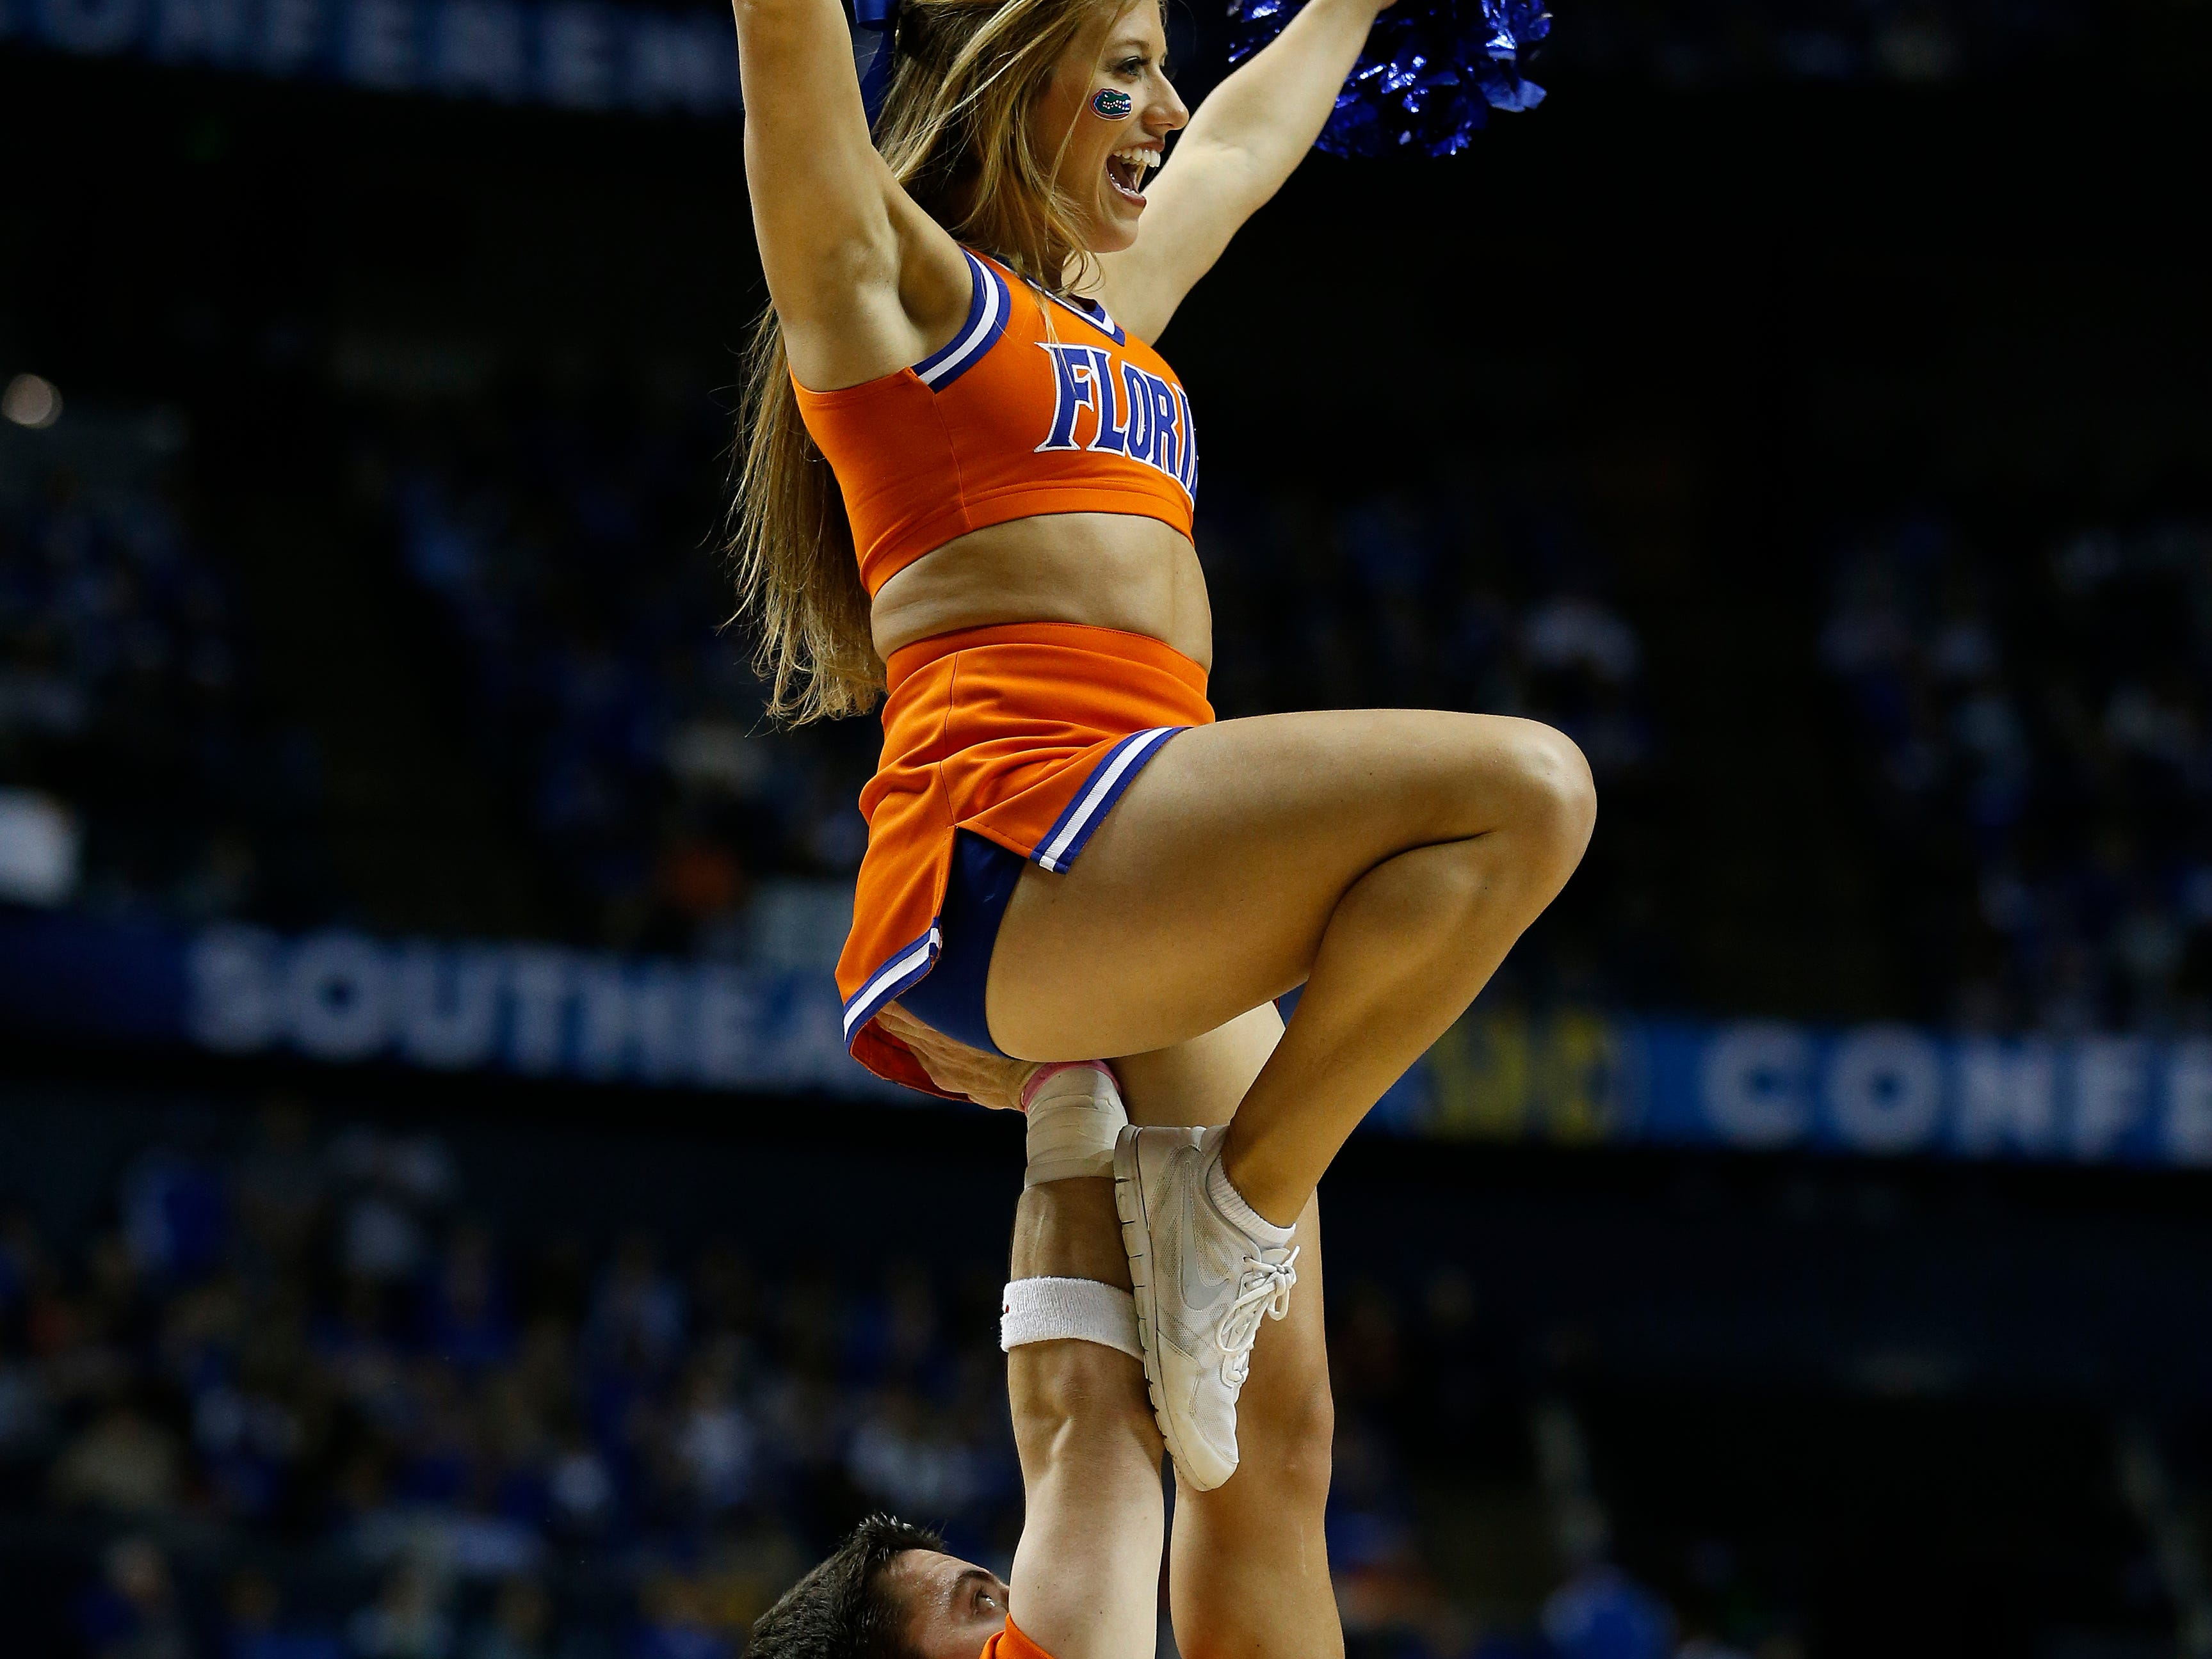 Florida cheerleaders perform during the first half of an NCAA college basketball game in the quarter final round of the Southeastern Conference tournament between Kentucky and Florida, Friday, March 13, 2015, in Nashville, Tenn. (AP Photo/Steve Helber)